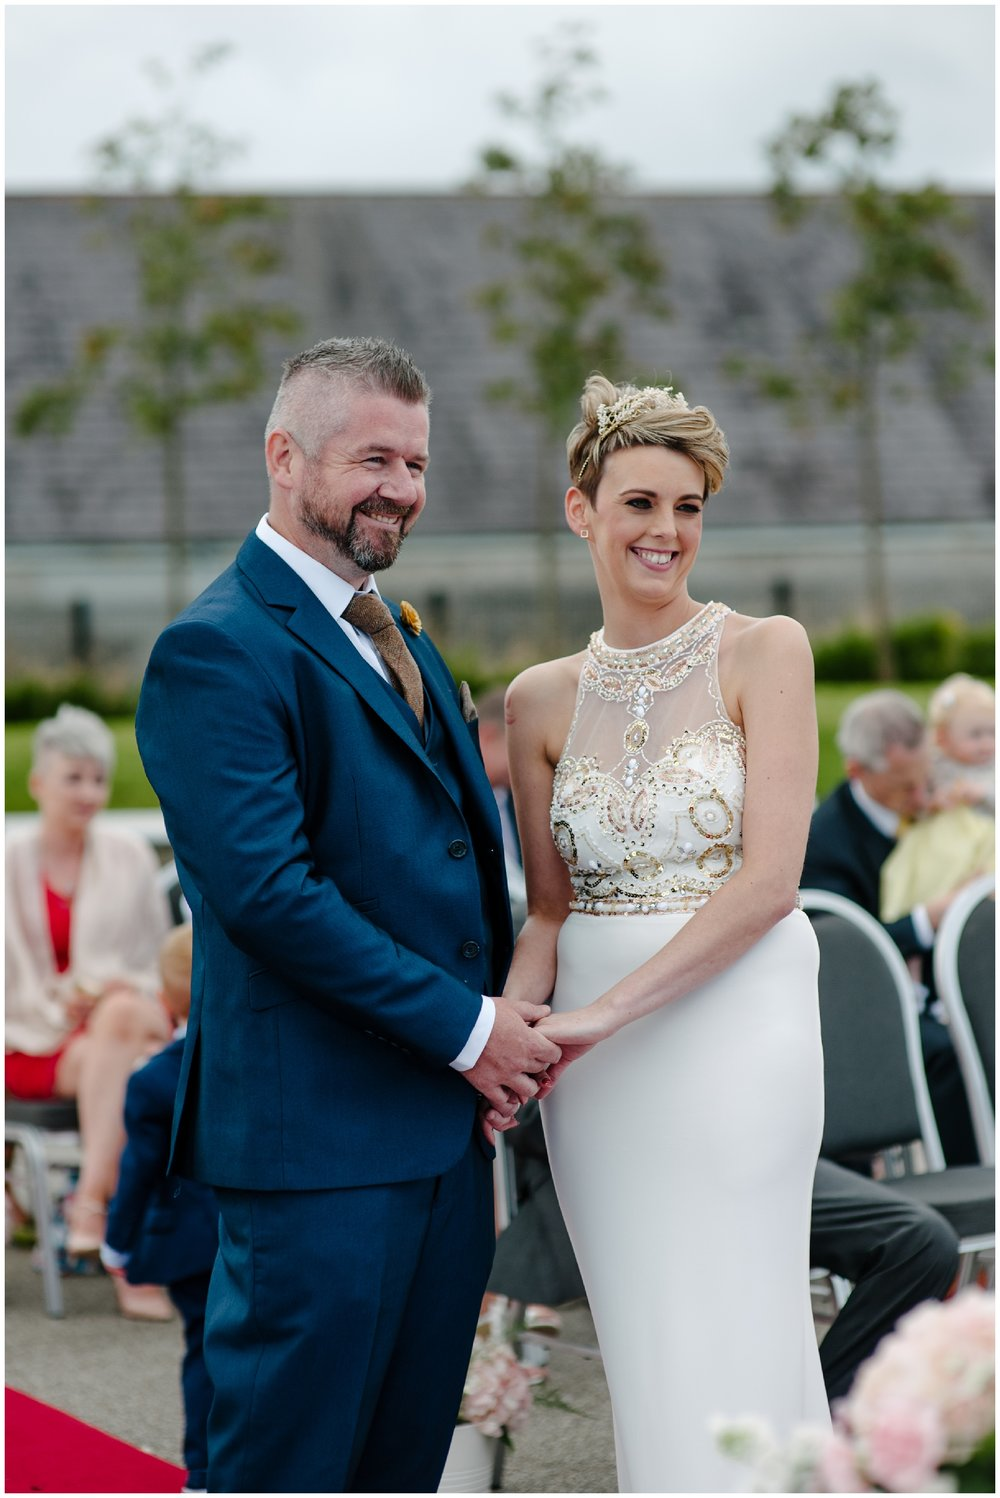 christina_stephen_hill_of_the_oneill_dungannon_wedding_jude_browne_photography_0022.jpg